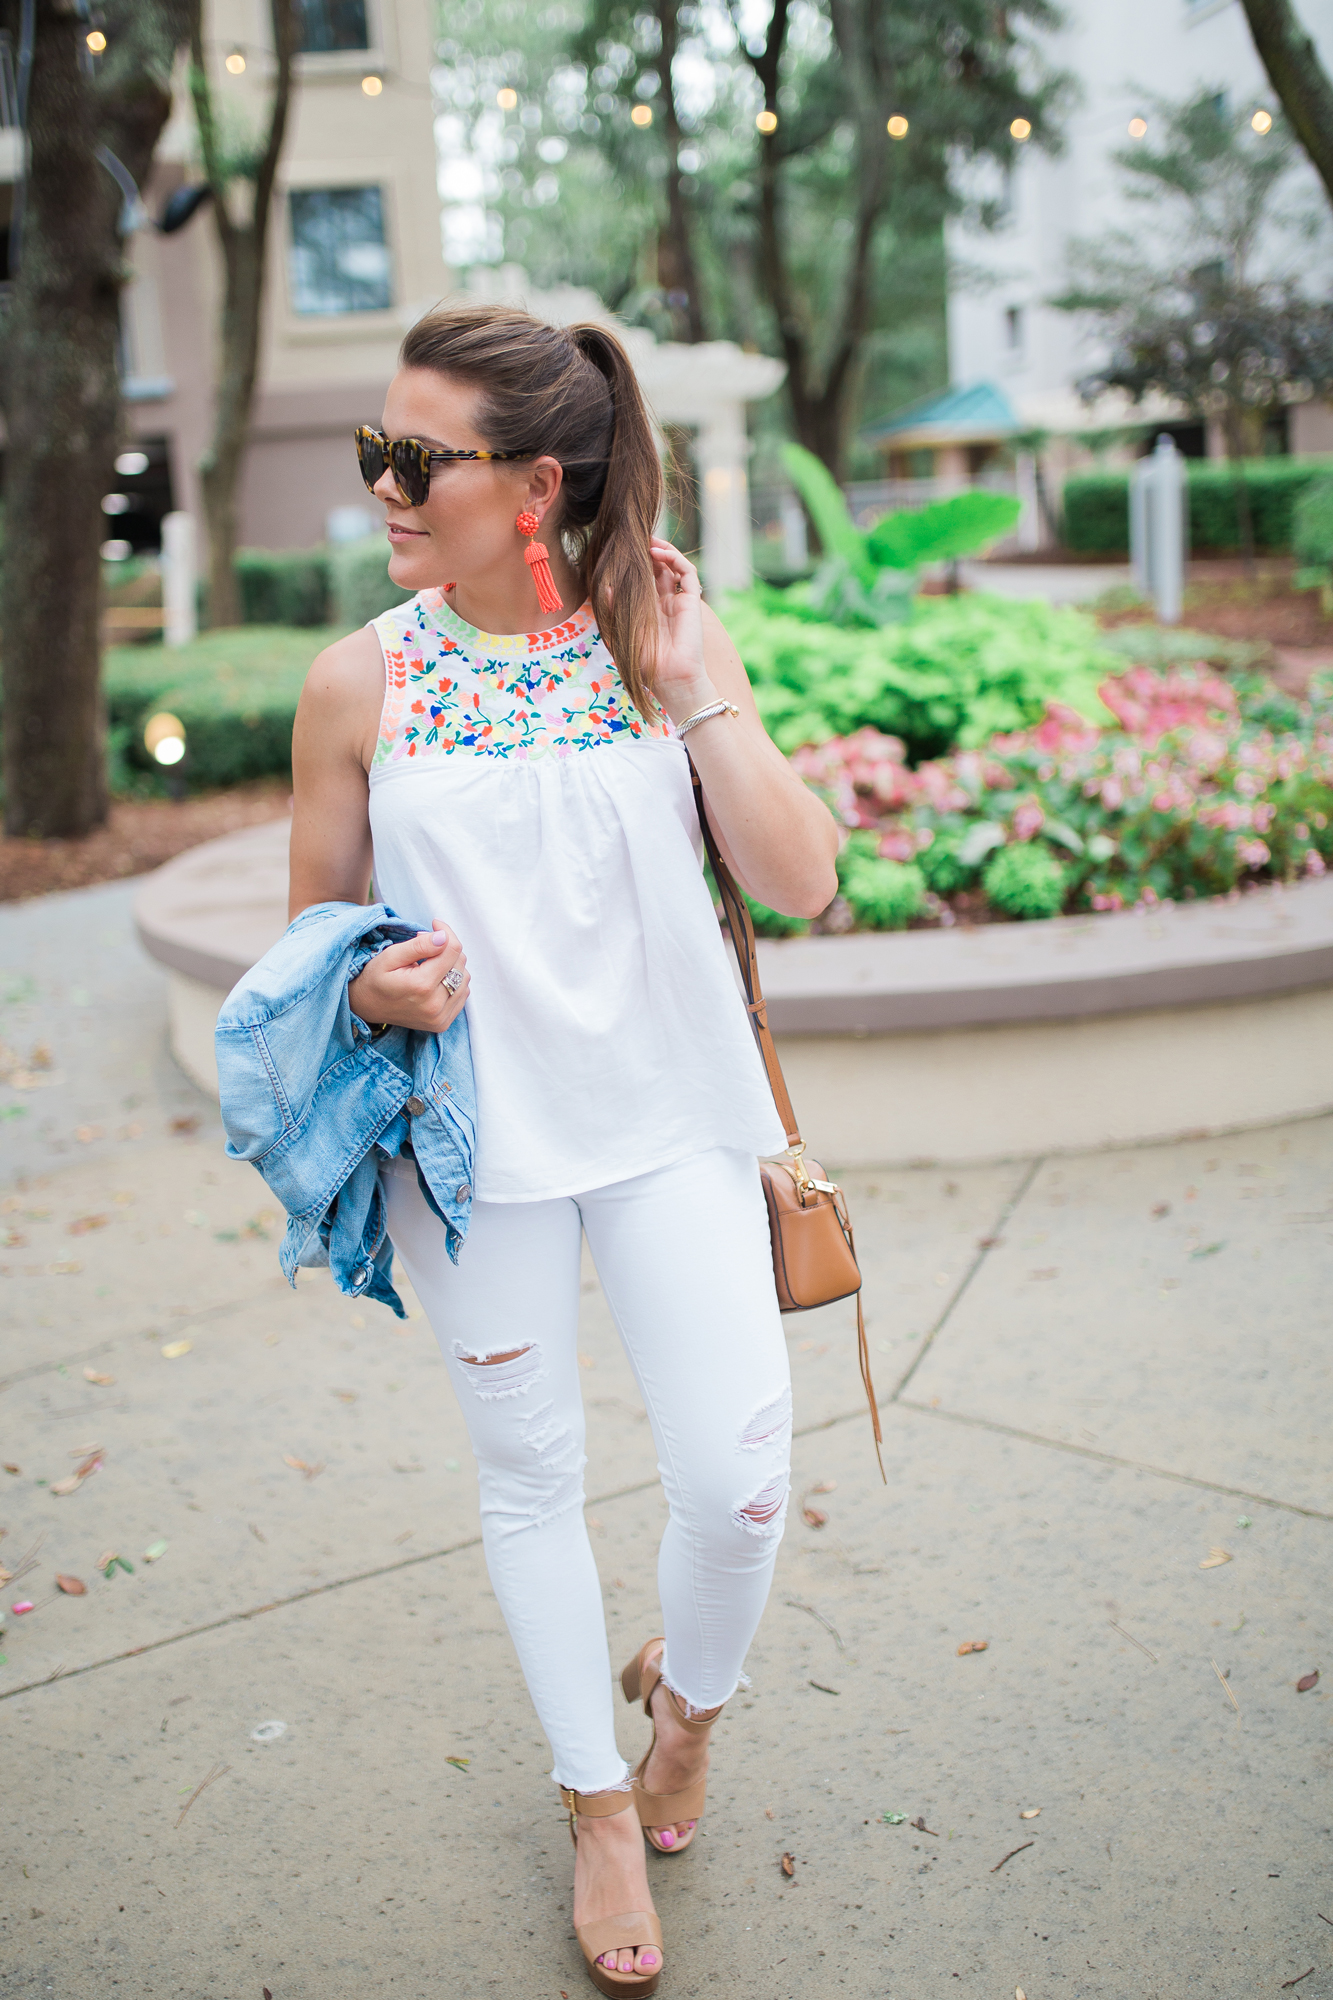 Embroidered Tank Top / All white outfit